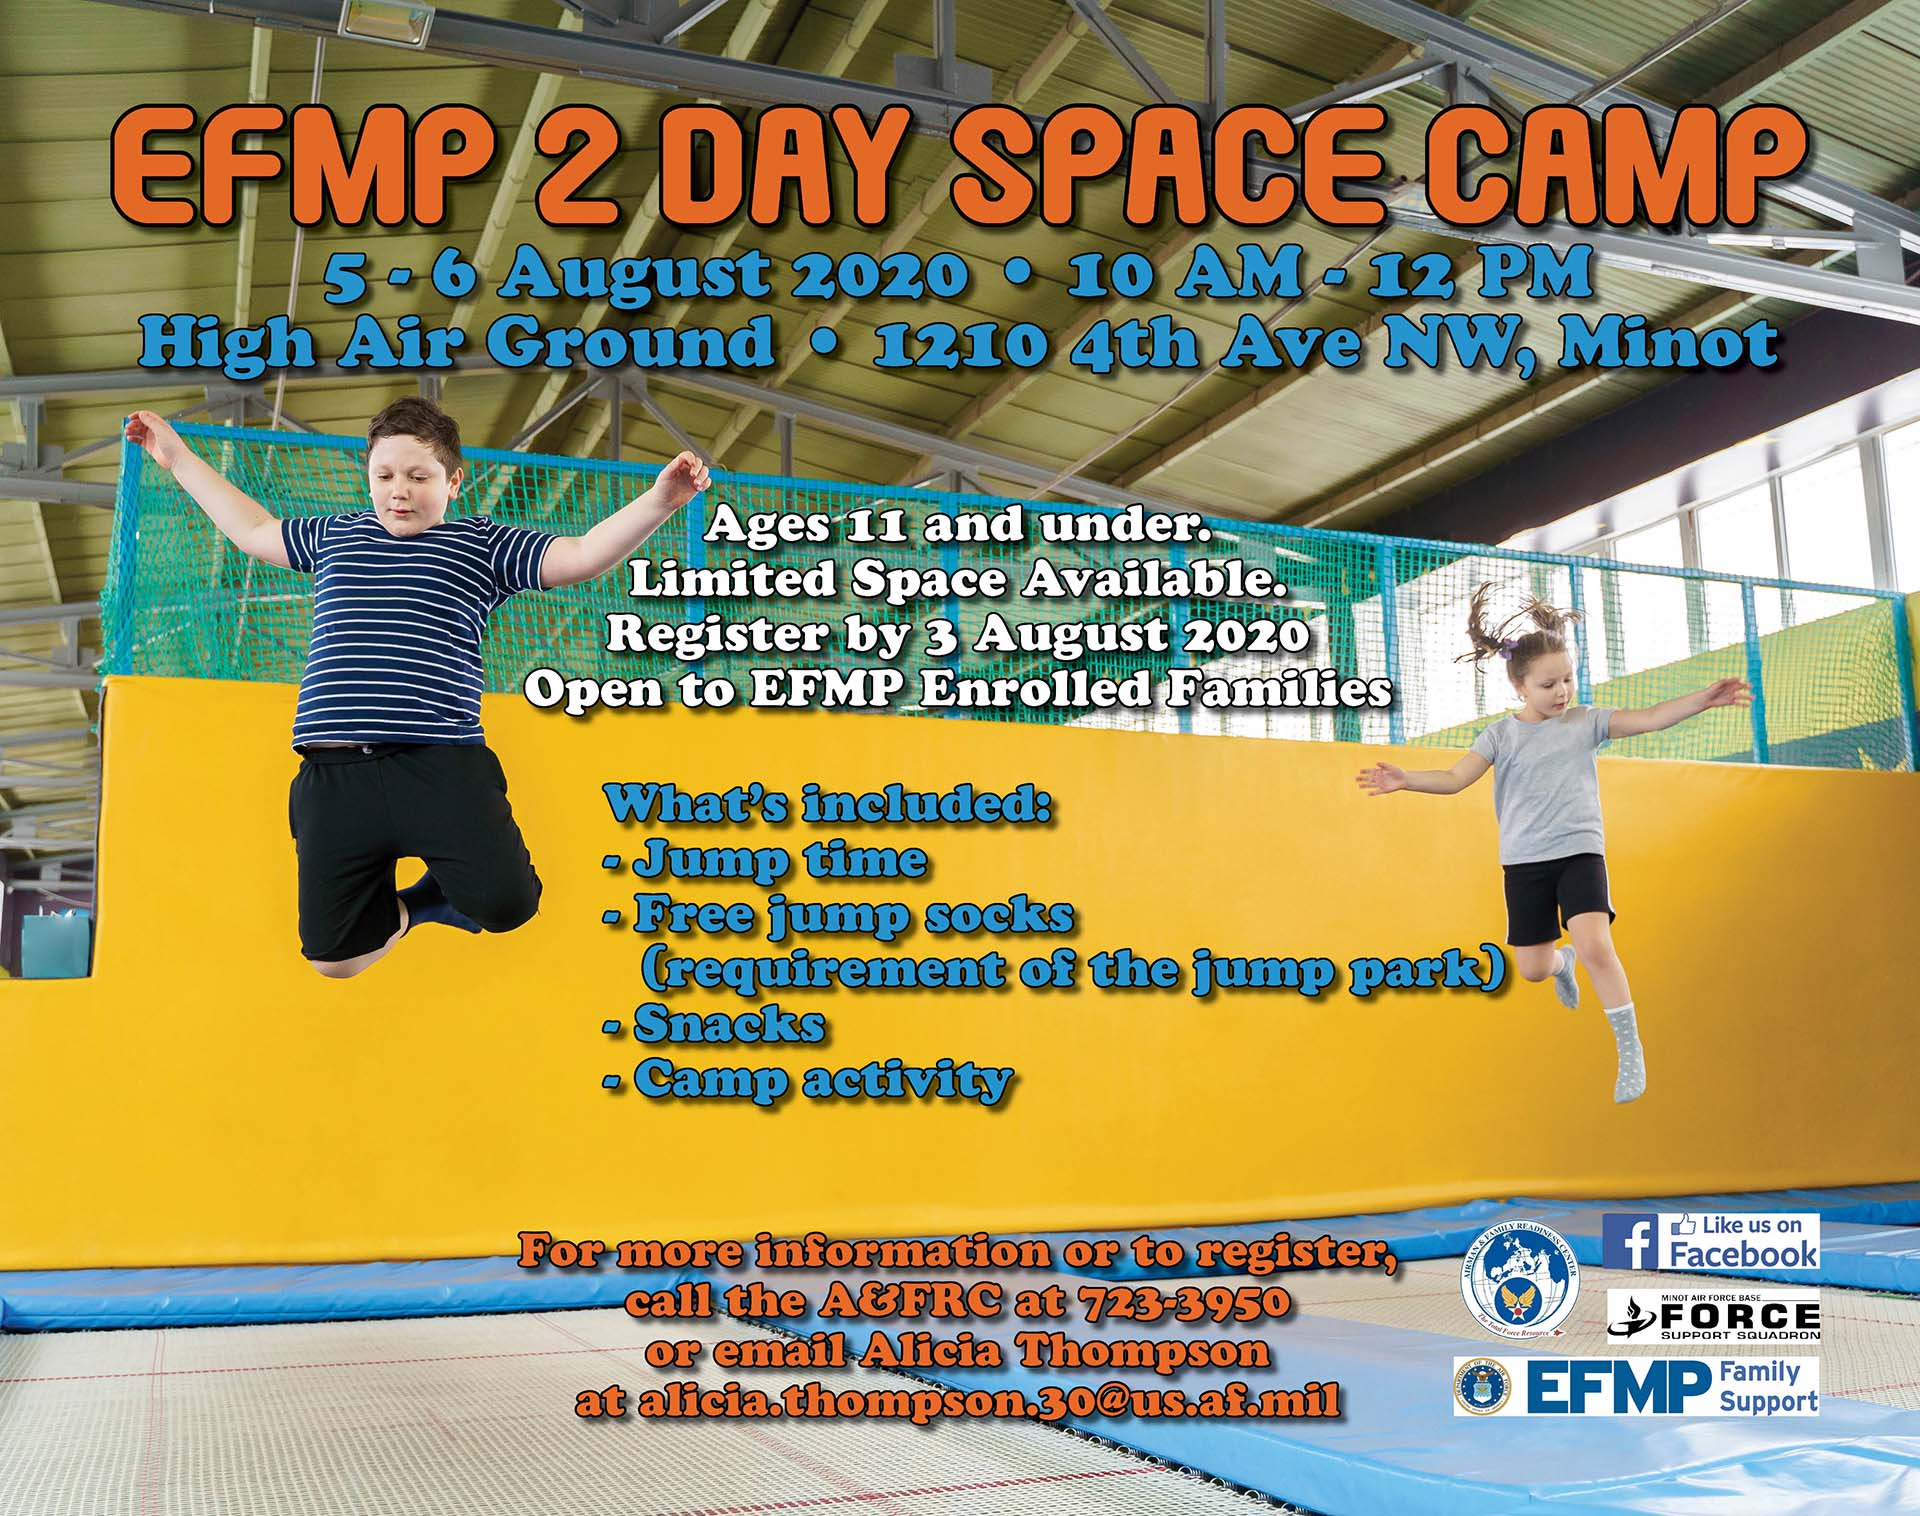 EFMP 2 Day Space Camp